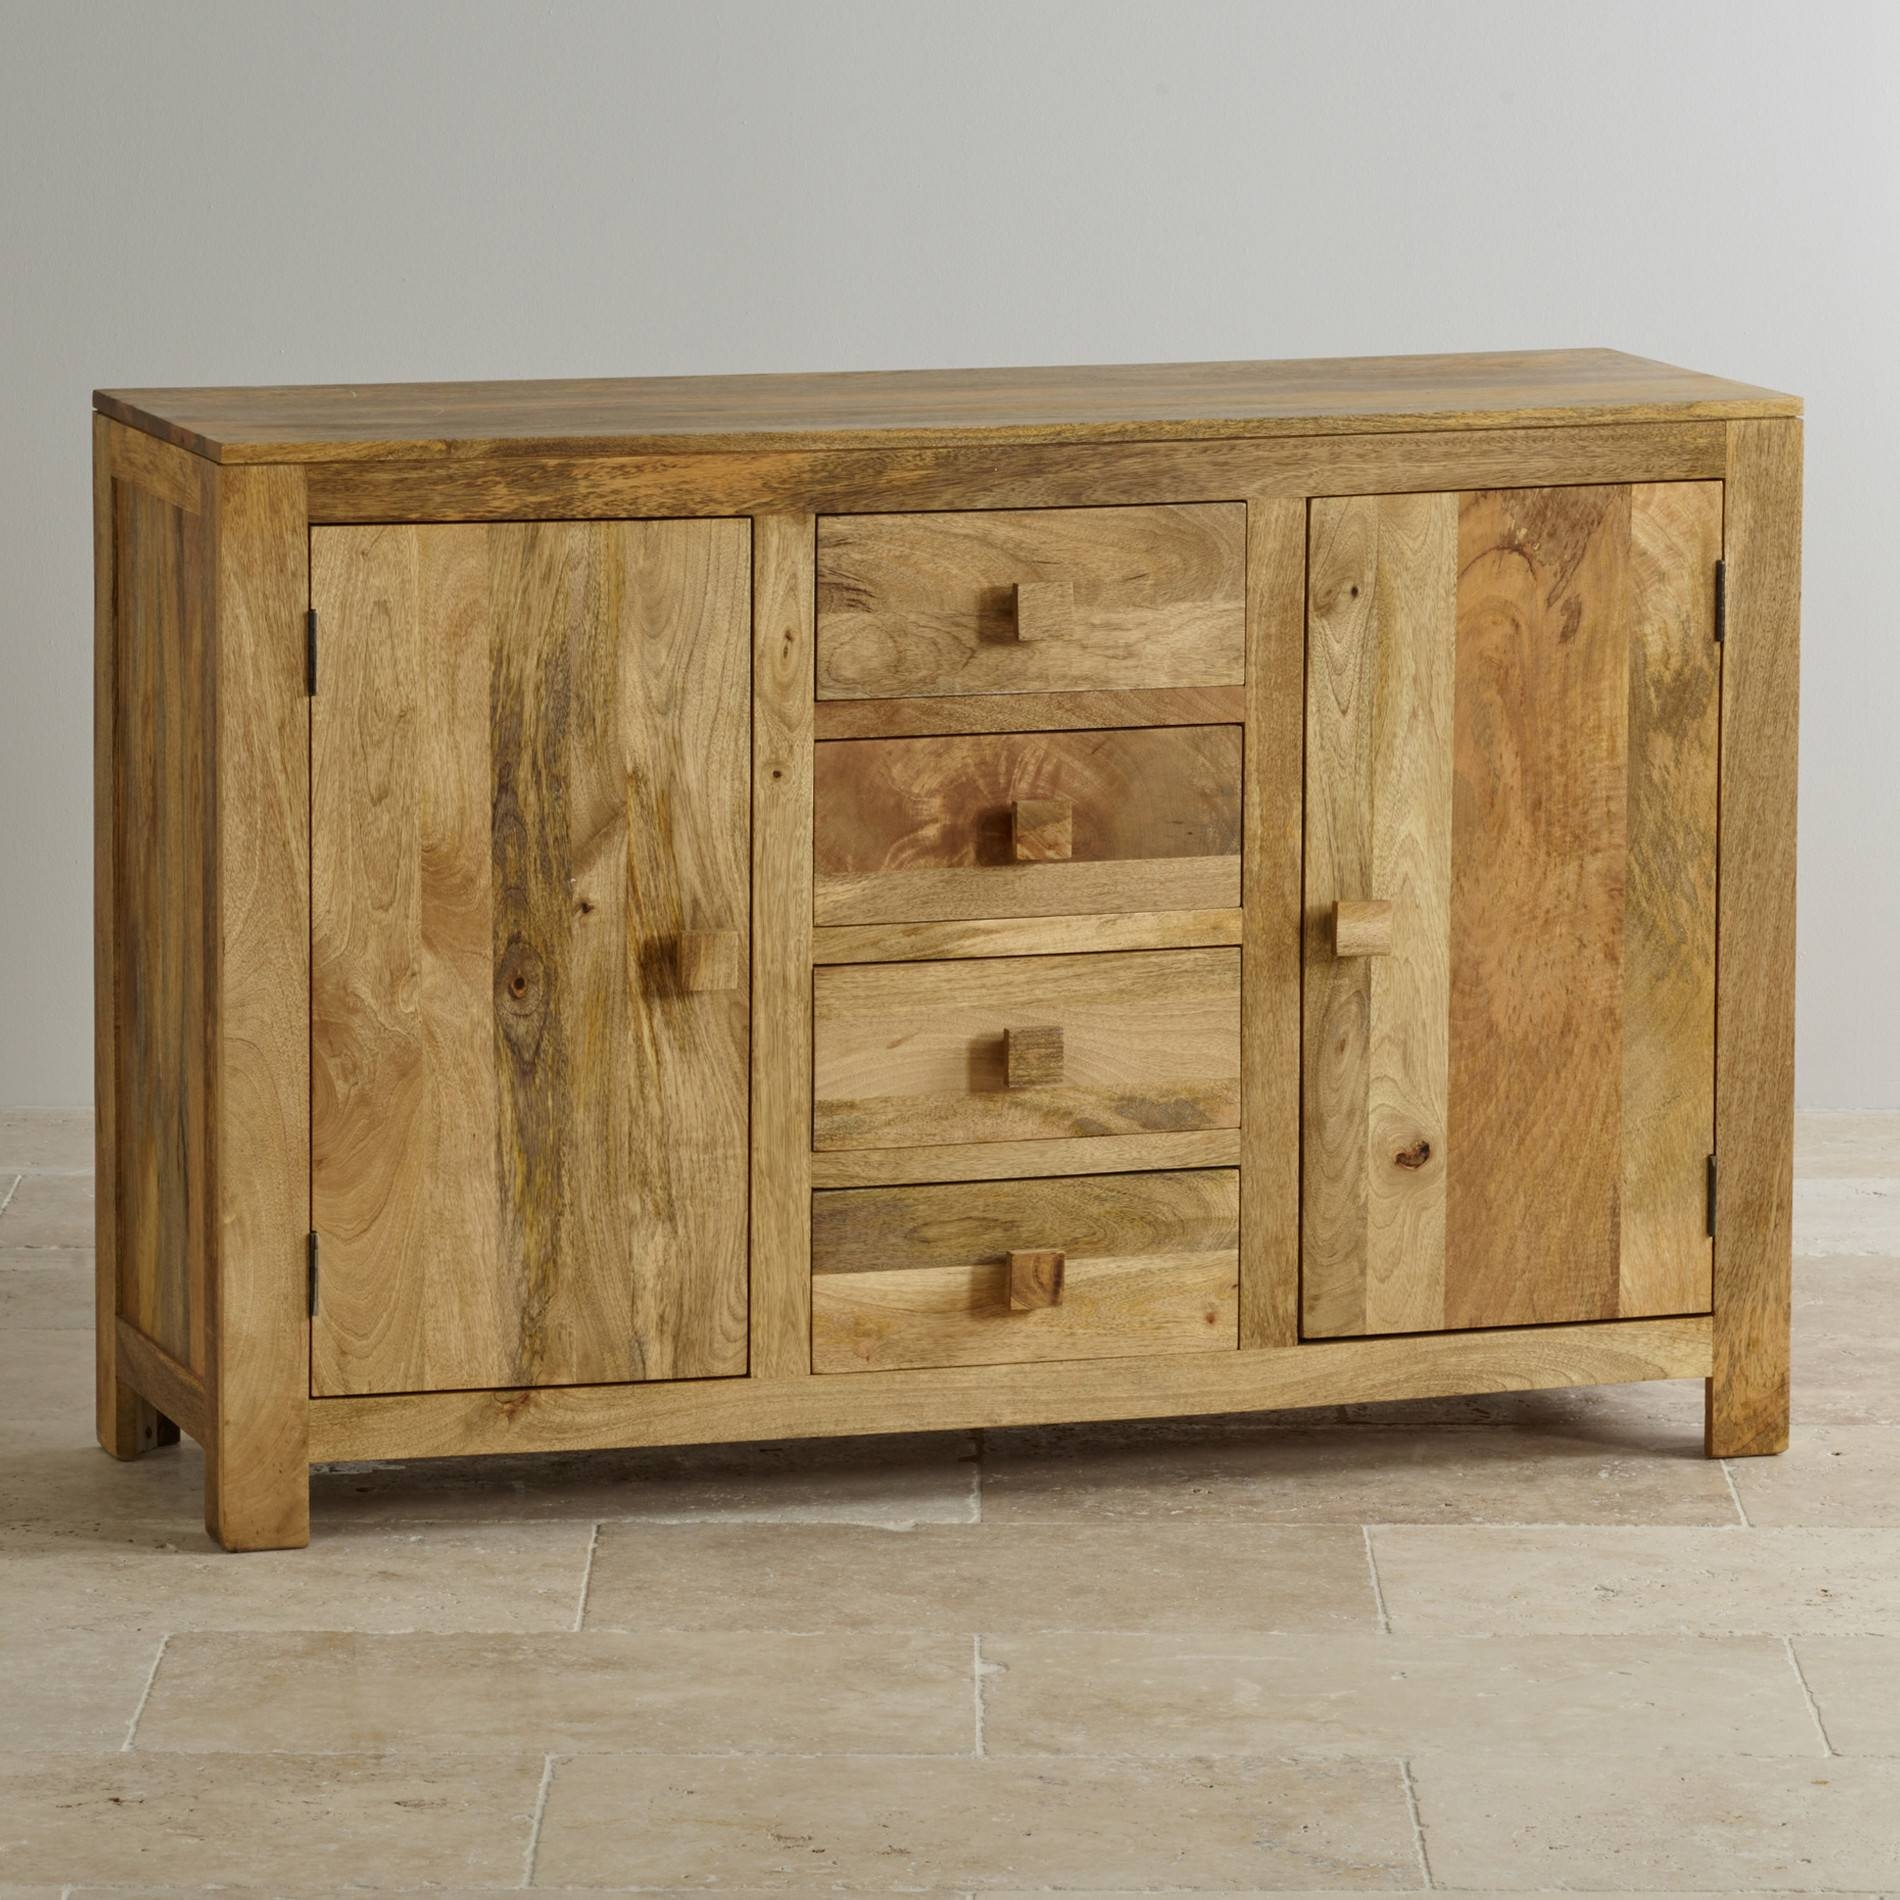 Solid Mango Wood Furniture | Mantis Light | Oak Furniture Land Pertaining To Light Wood Sideboards (View 7 of 20)